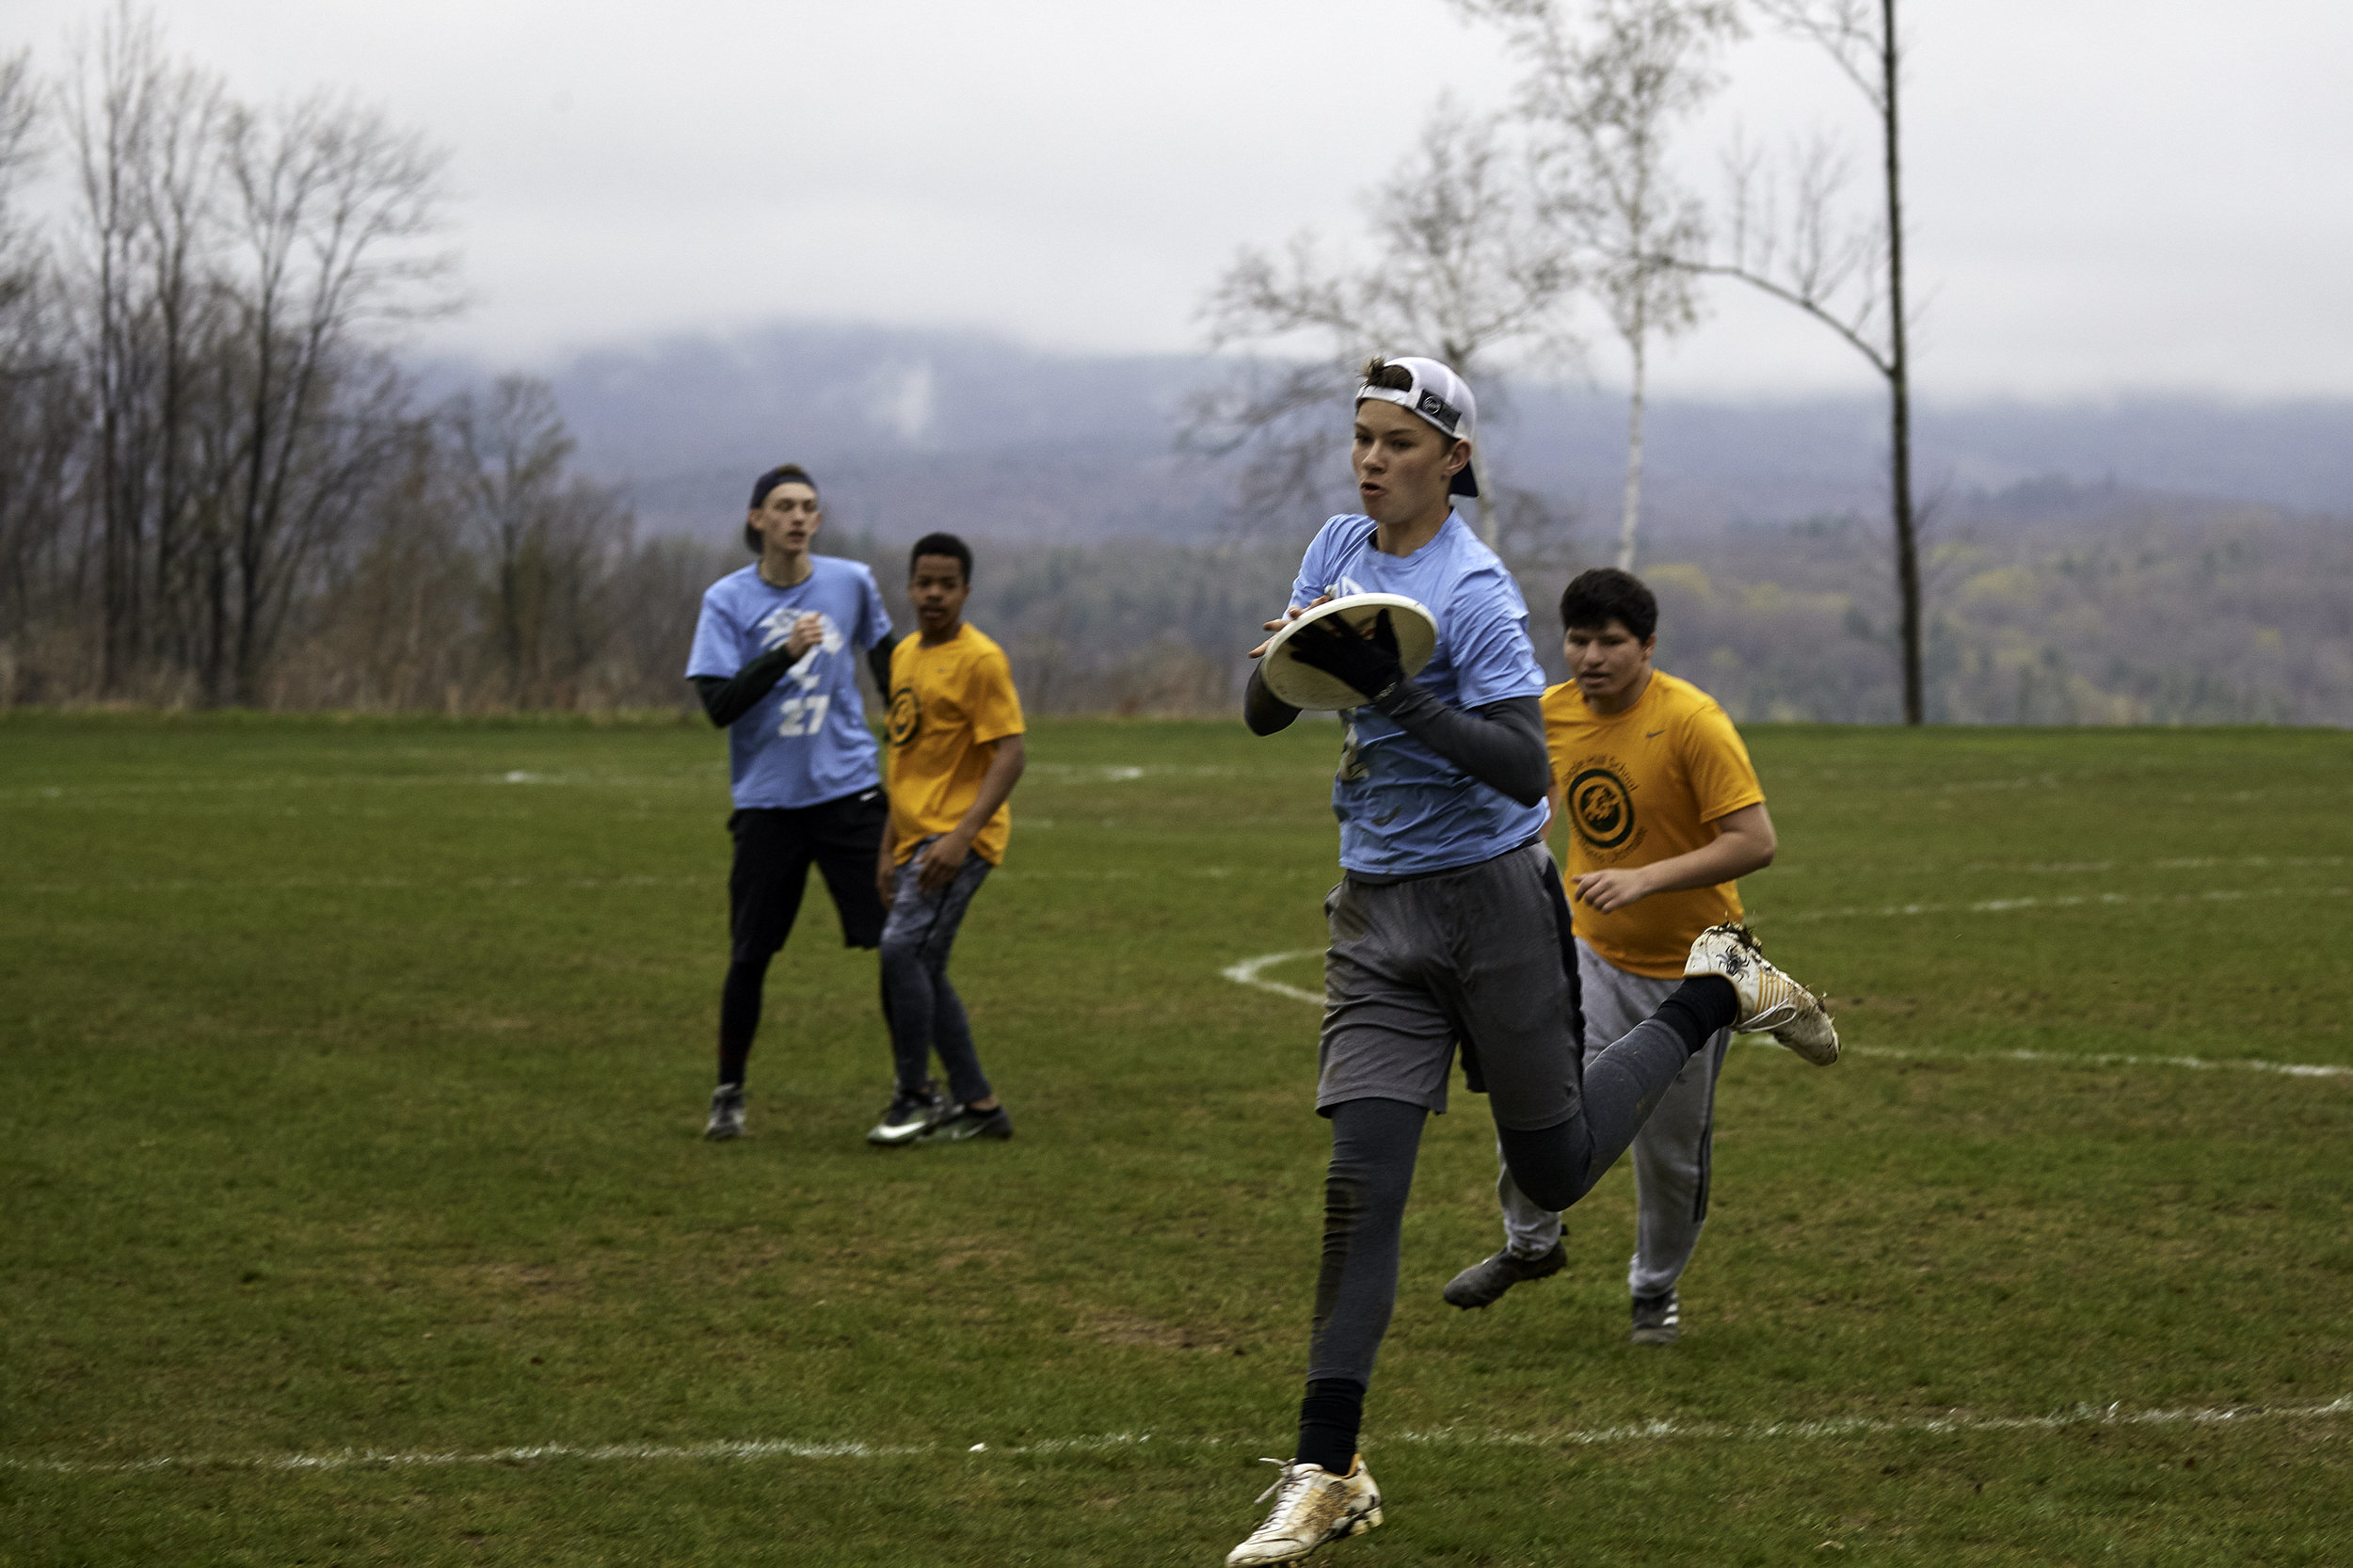 Ultimate Frisbee vs. Eagle Hill School - May 3, 2019 - 188379.jpg